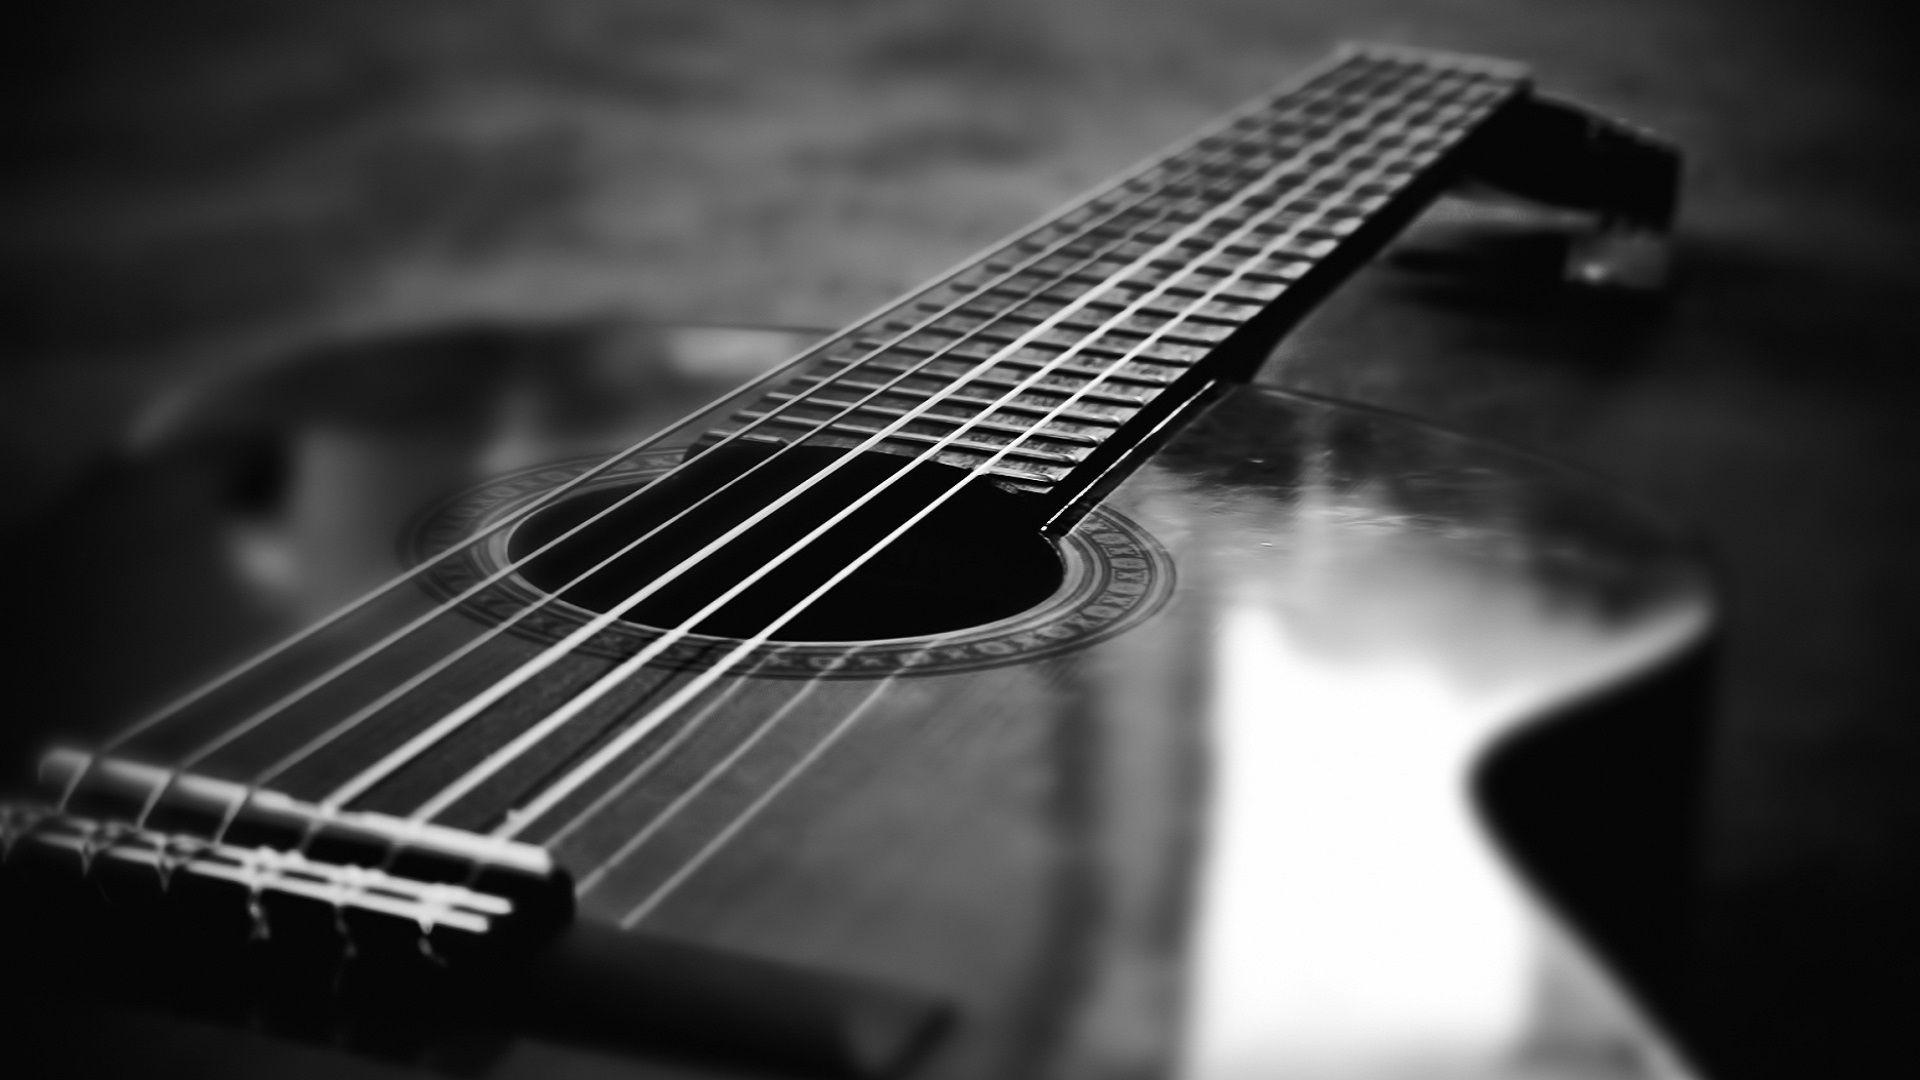 Image Collection of Guitar: by Mary Means for PC & Mac, Laptop